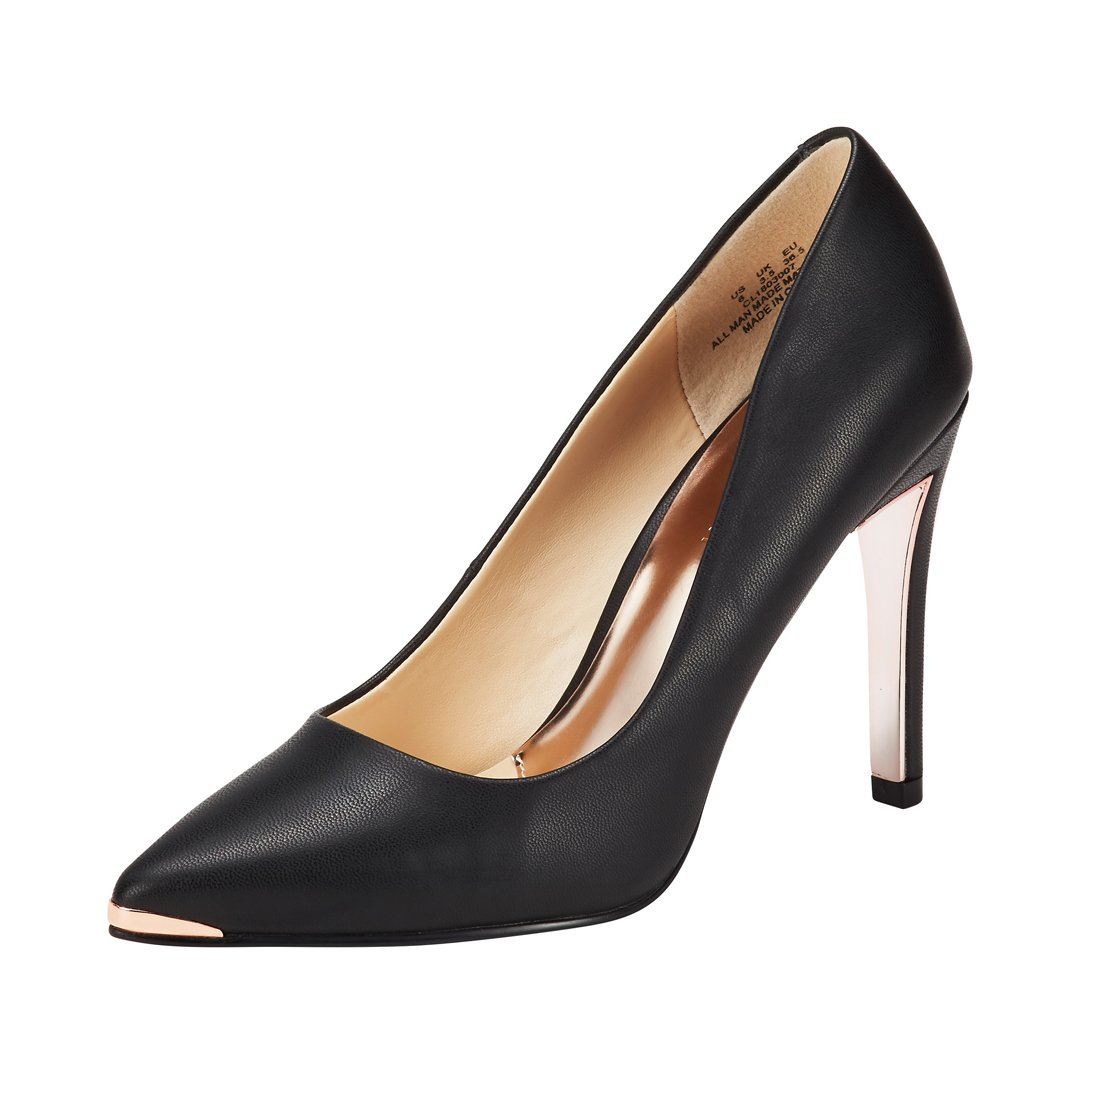 JENN ARDOR Women's Closed Pointed Toe Pumps Stiletto High Heels Office Lady Wedding Party Dress Heeded Shoes Black 8.5 (9.9in)